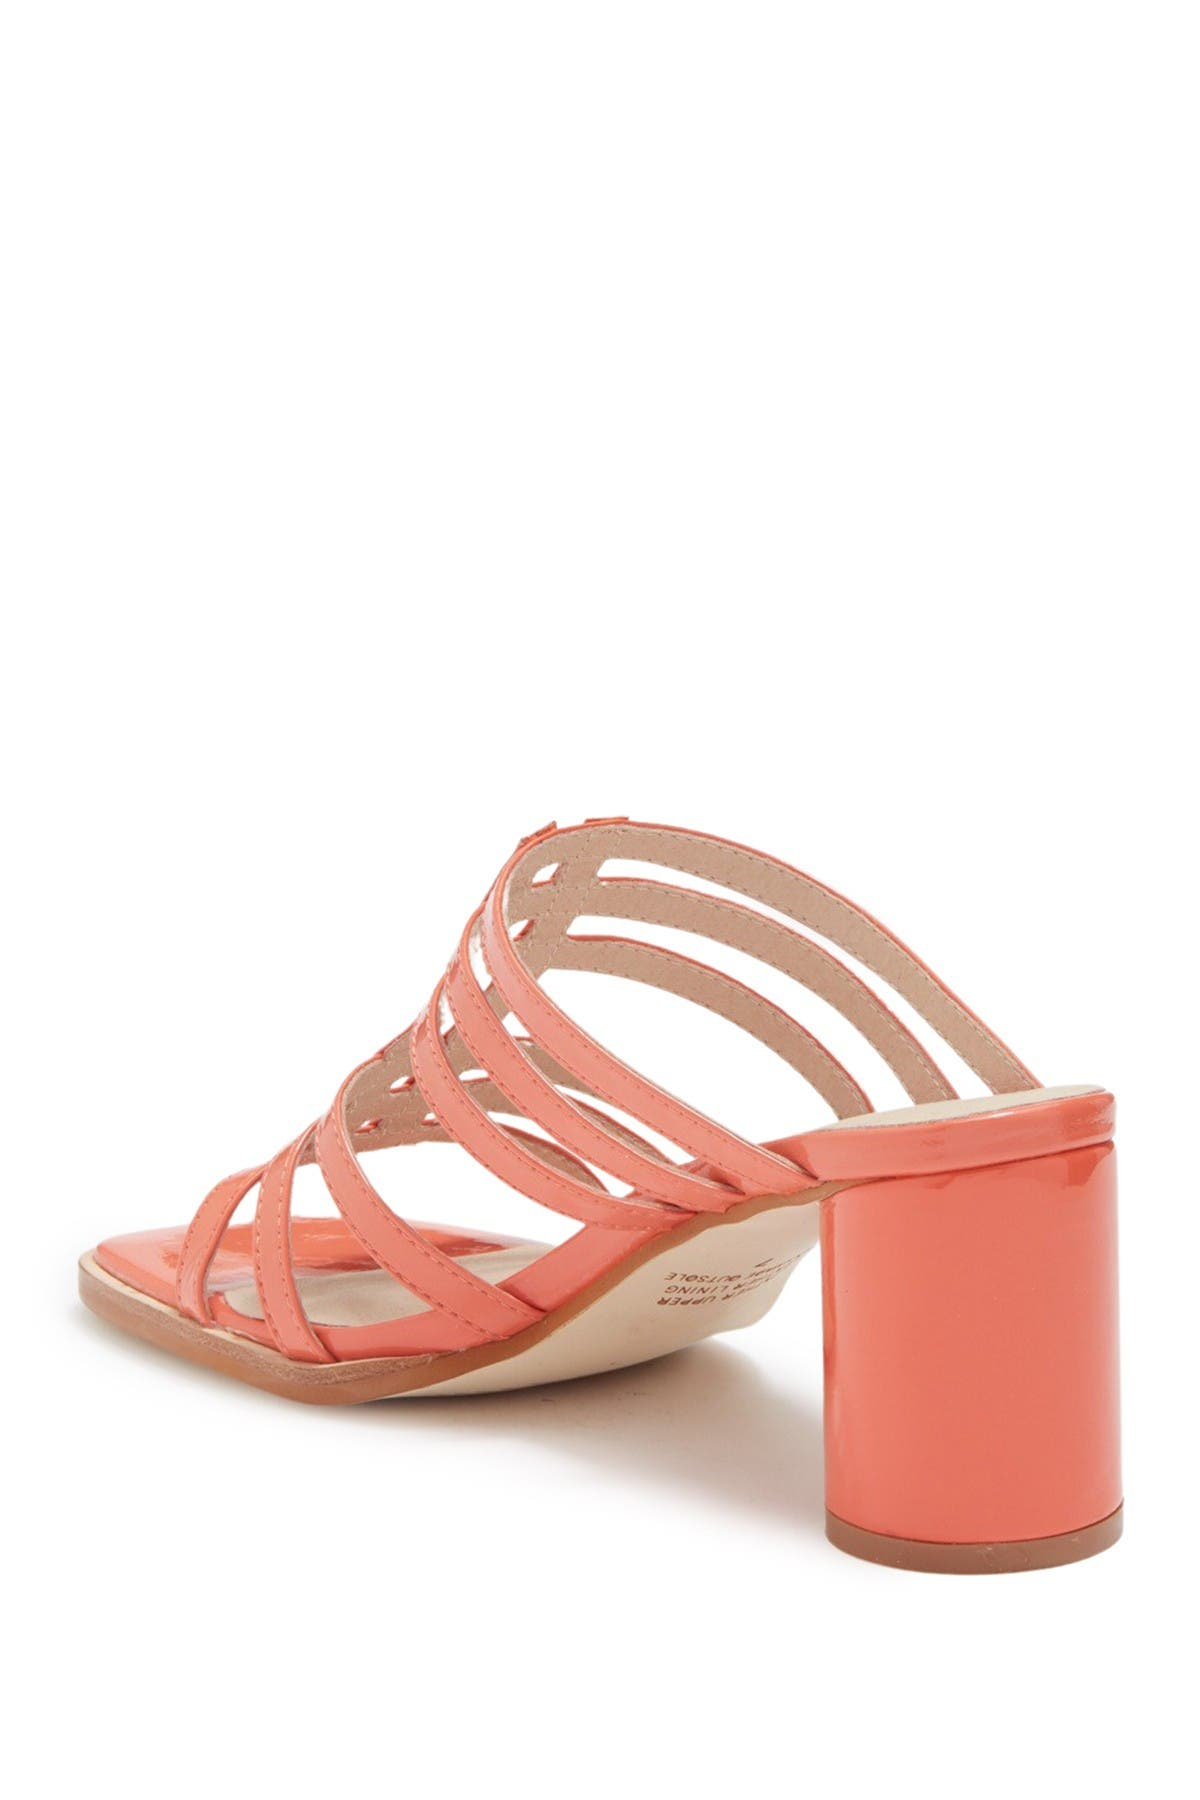 Image of Intentionally Blank Stamps Coral Patent Strappy Sandal